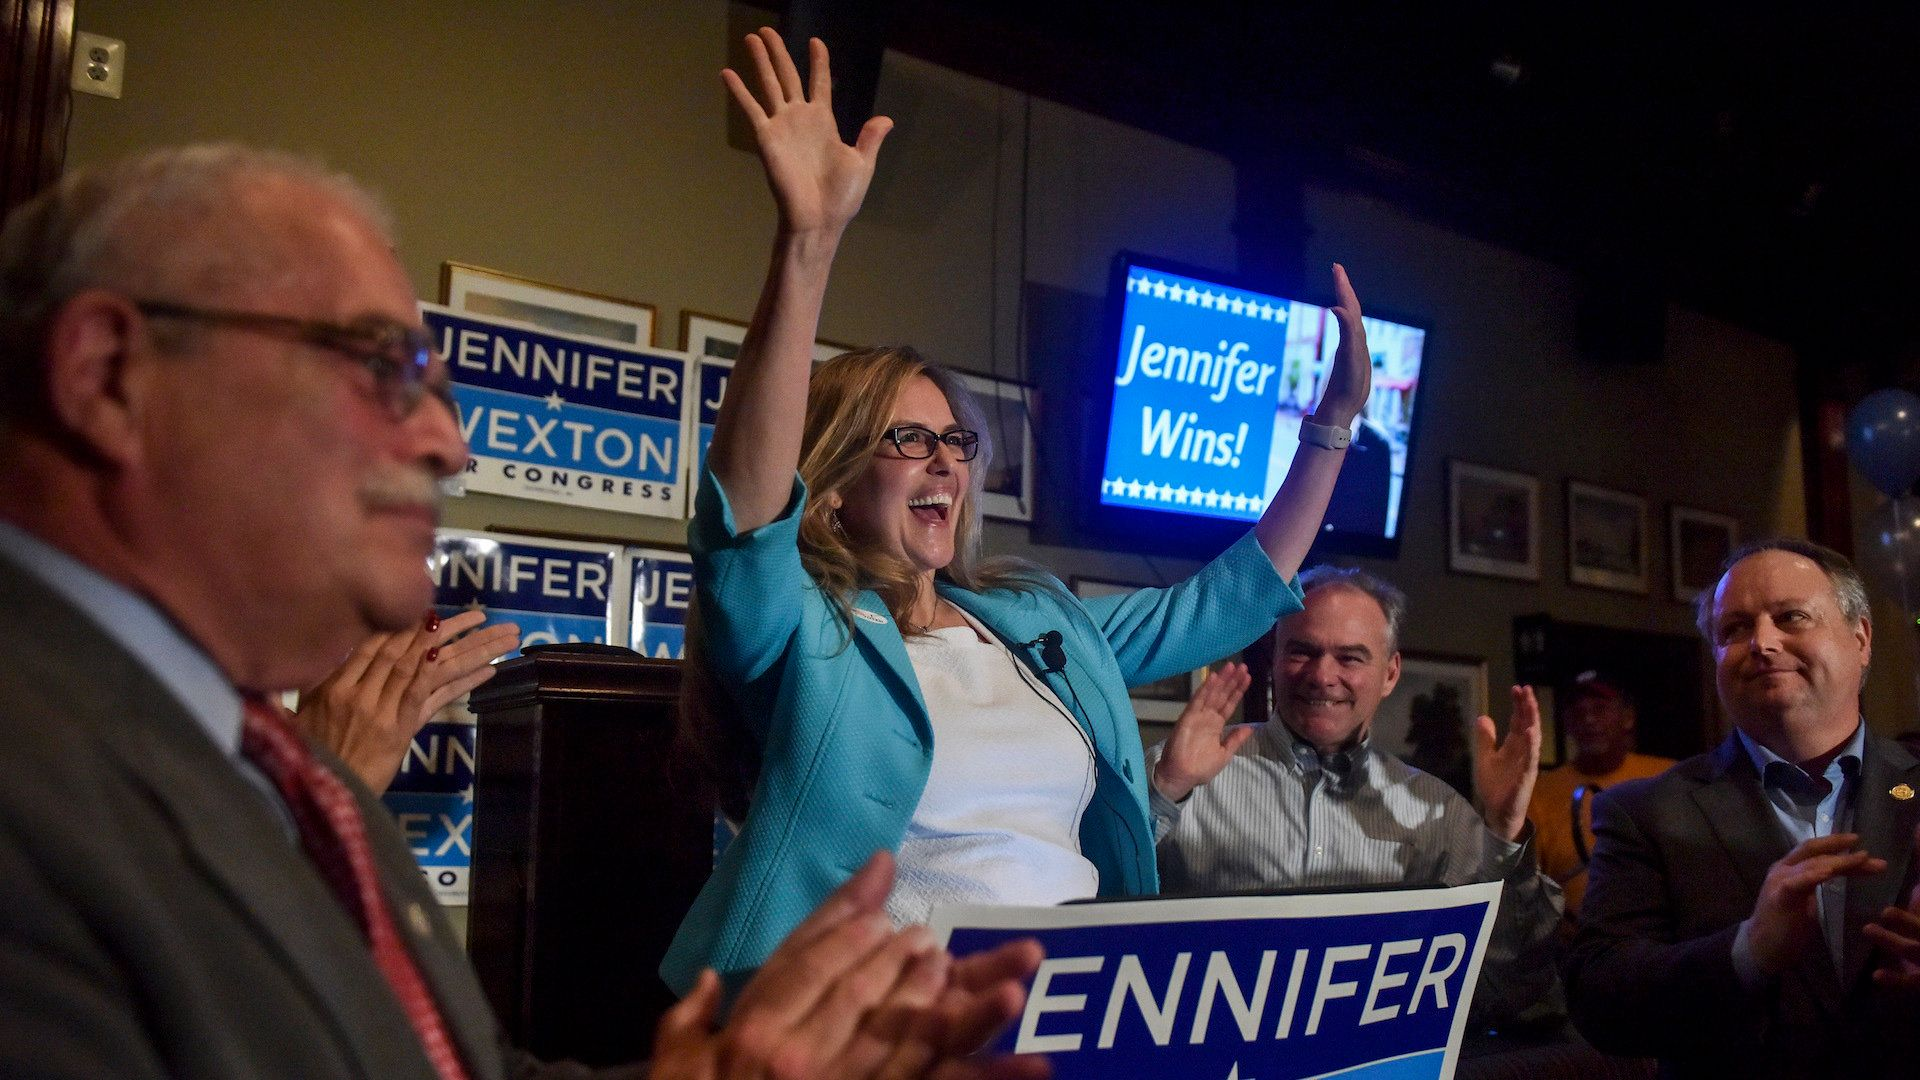 STERLING, VA - JUNE 12: Virginia State Senator Jennifer Wexton addresses her supporters at O'Faolain's Irish Pub & Restaurant after winning the Democratic nomination for Virginia's 10th Congressional District on Tuesday, June 12, 2018, in Sterling, VA.  She will face GOP incumbent Barbara Comstock. (Photo by Jahi Chikwendiu/The Washington Post via Getty Images)